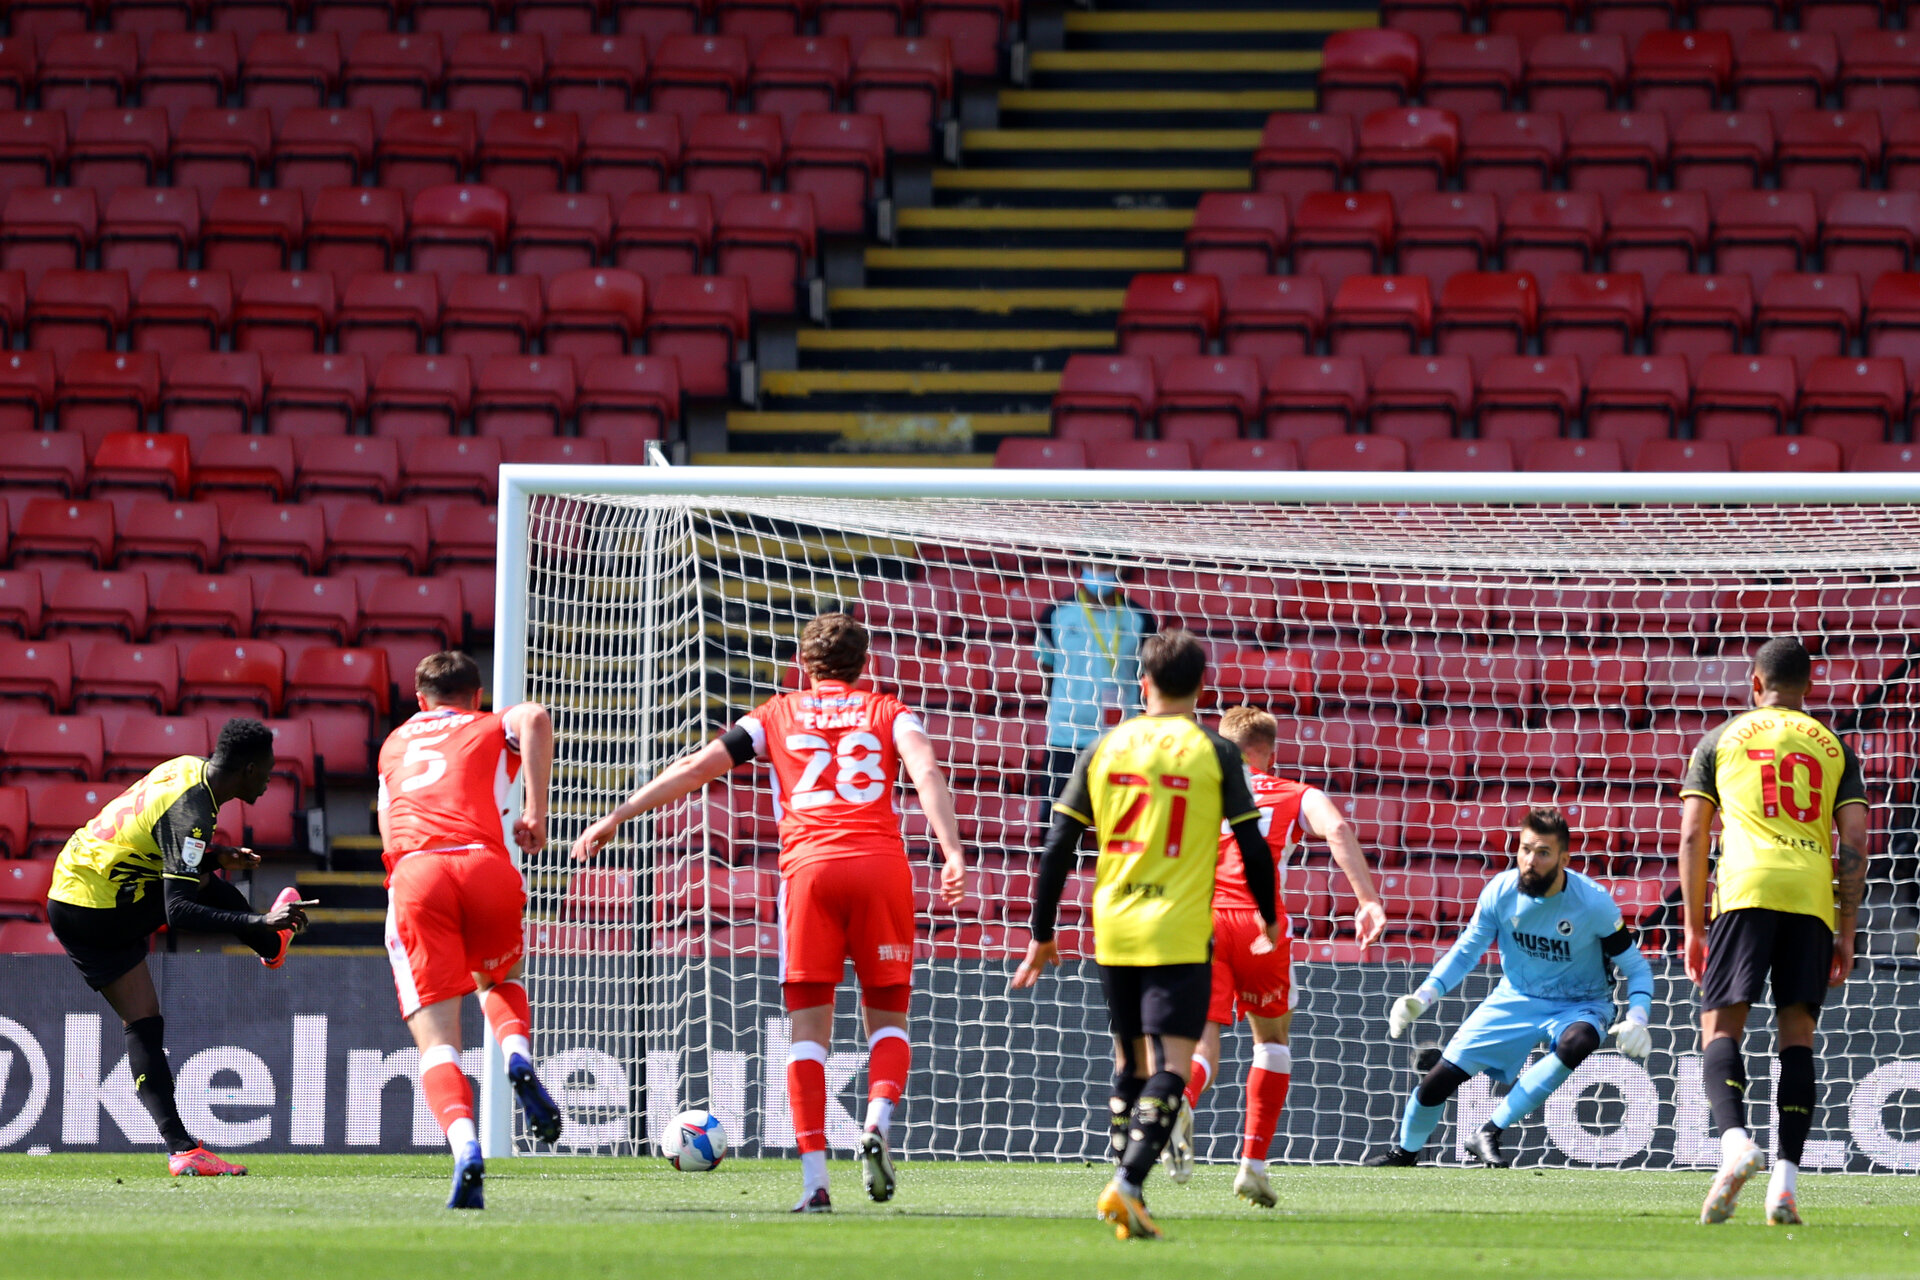 WATFORD, ENGLAND - APRIL 24: Ismaila Sarr of Watford scores their sides first goal from the penalty spot past Bartosz Bialkowski of Millwall  during the Sky Bet Championship match between Watford and Millwall at Vicarage Road on April 24, 2021 in Watford, England. Sporting stadiums around the UK remain under strict restrictions due to the Coronavirus Pandemic as Government social distancing laws prohibit fans inside venues resulting in games being played behind closed doors.  (Photo by Richard Heathcote/Getty Images)